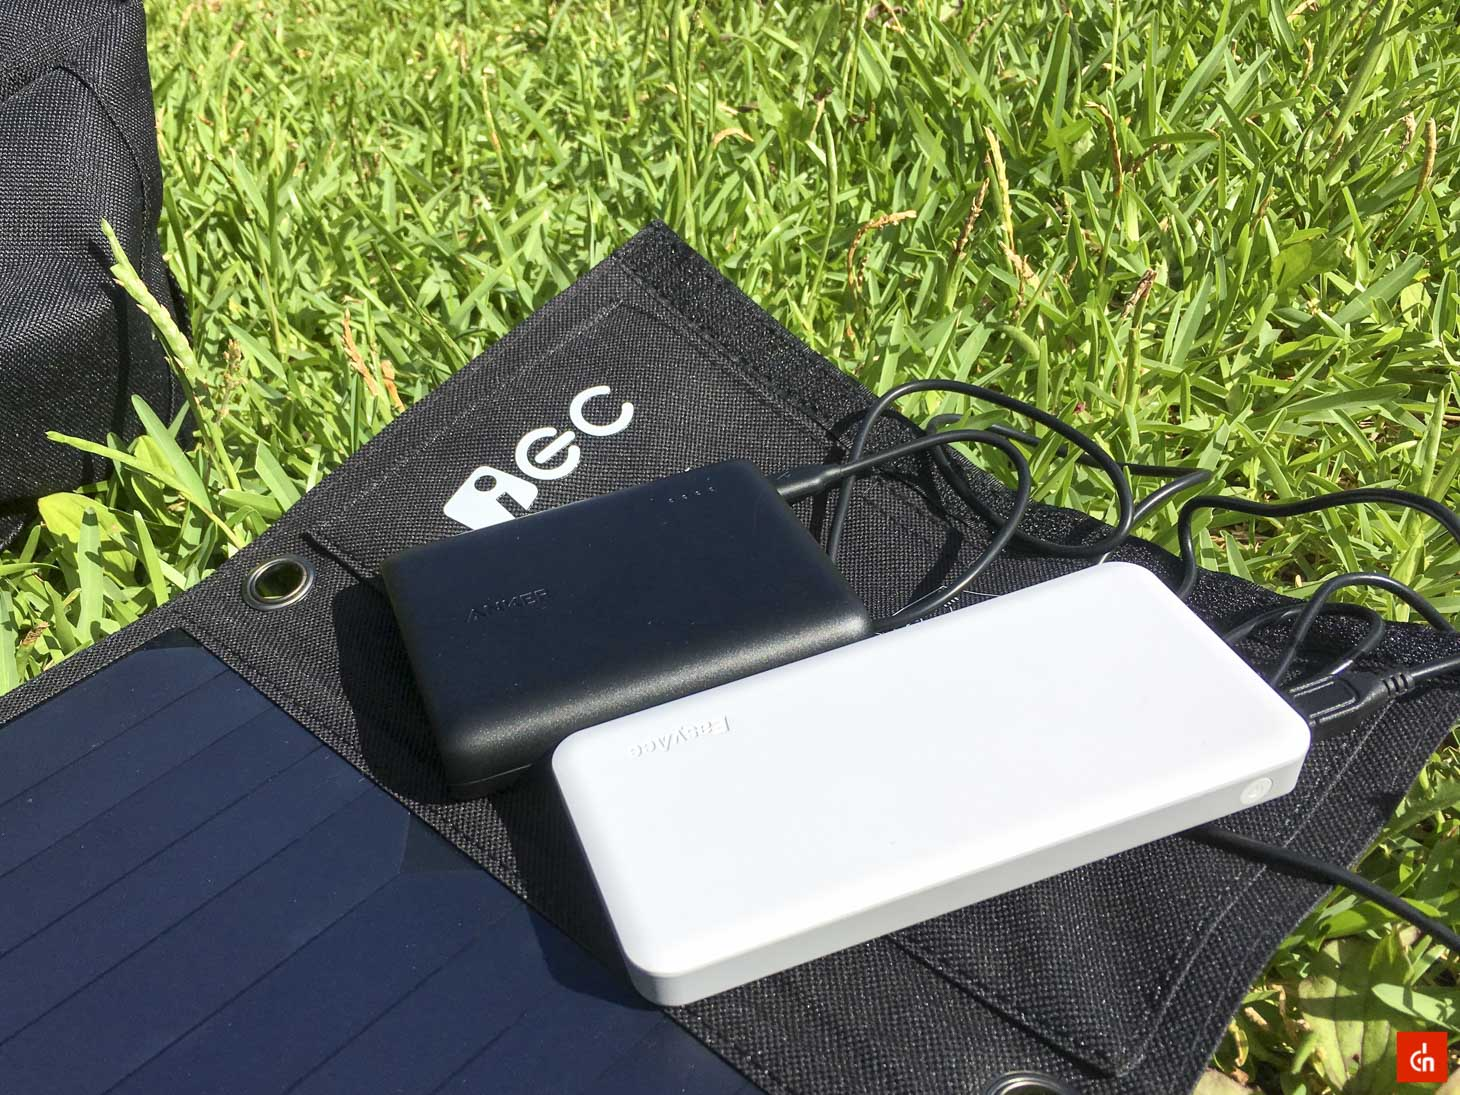 027_20160618_iec-solar-charger